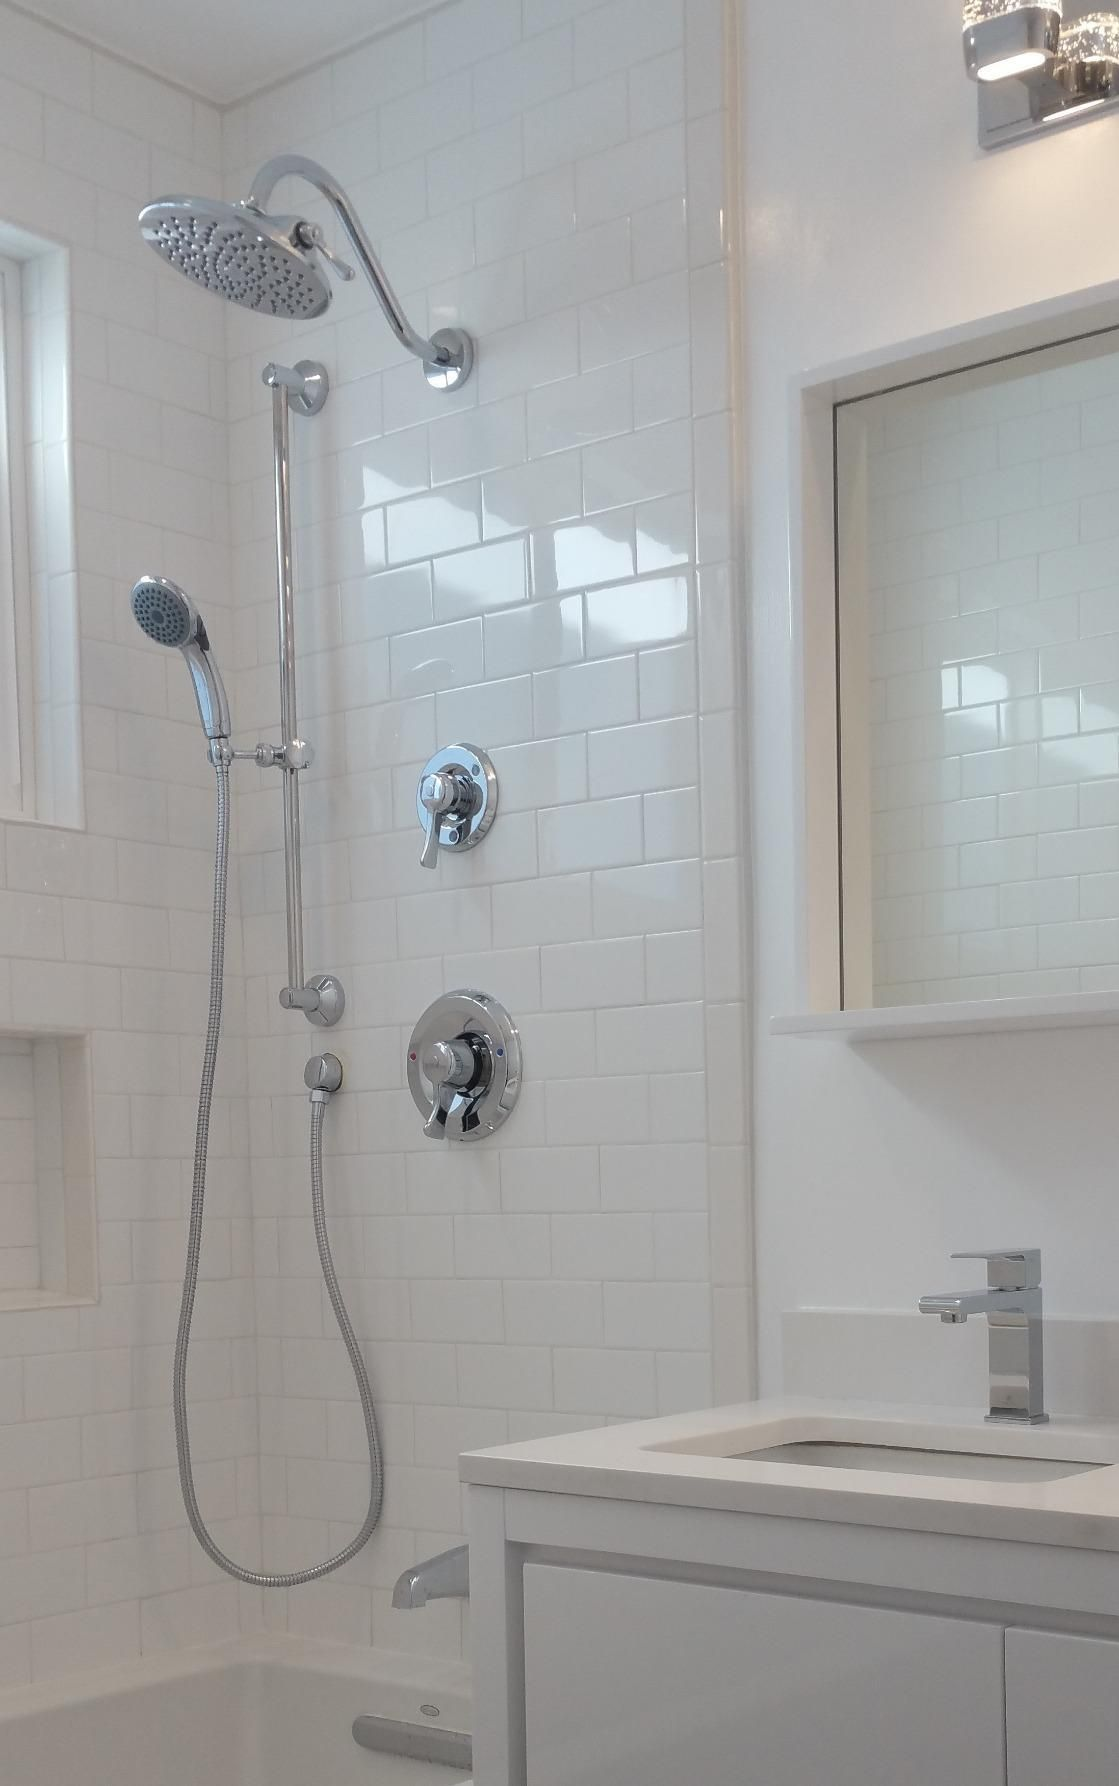 Best Tub Shower And Hand Shower Trim Reviews In 2020 Tub And